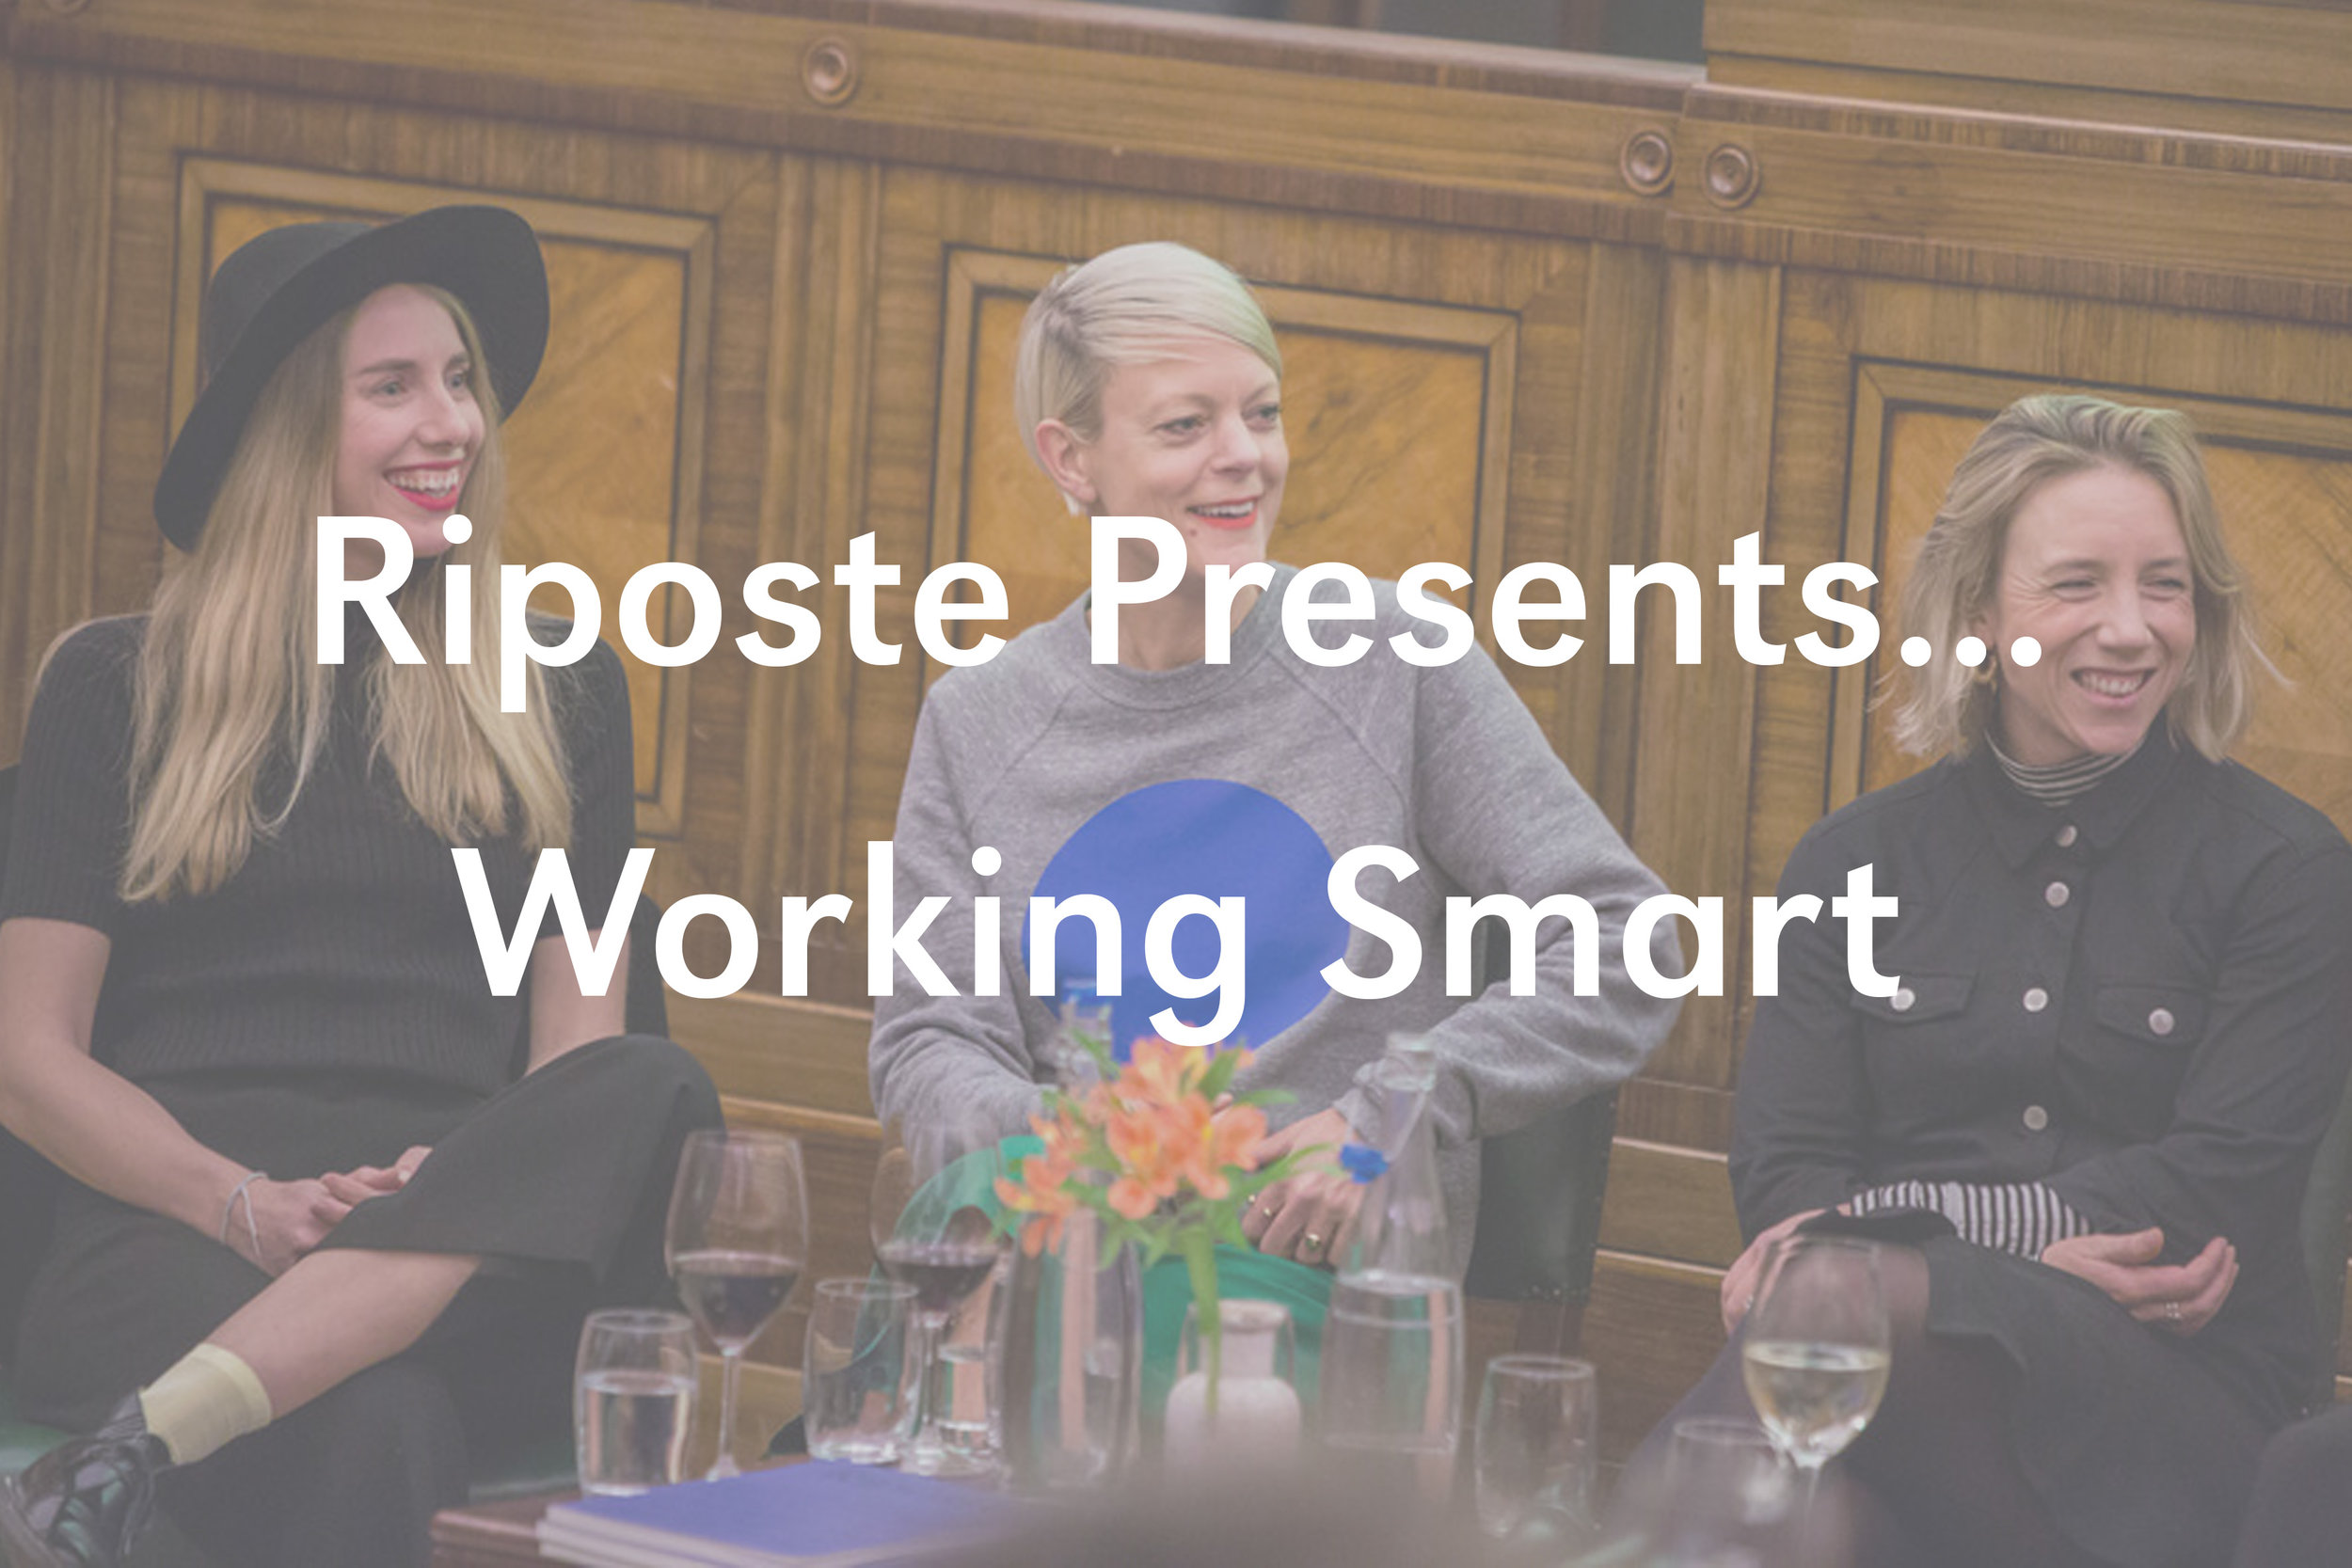 Riposte Presents... Working Smart